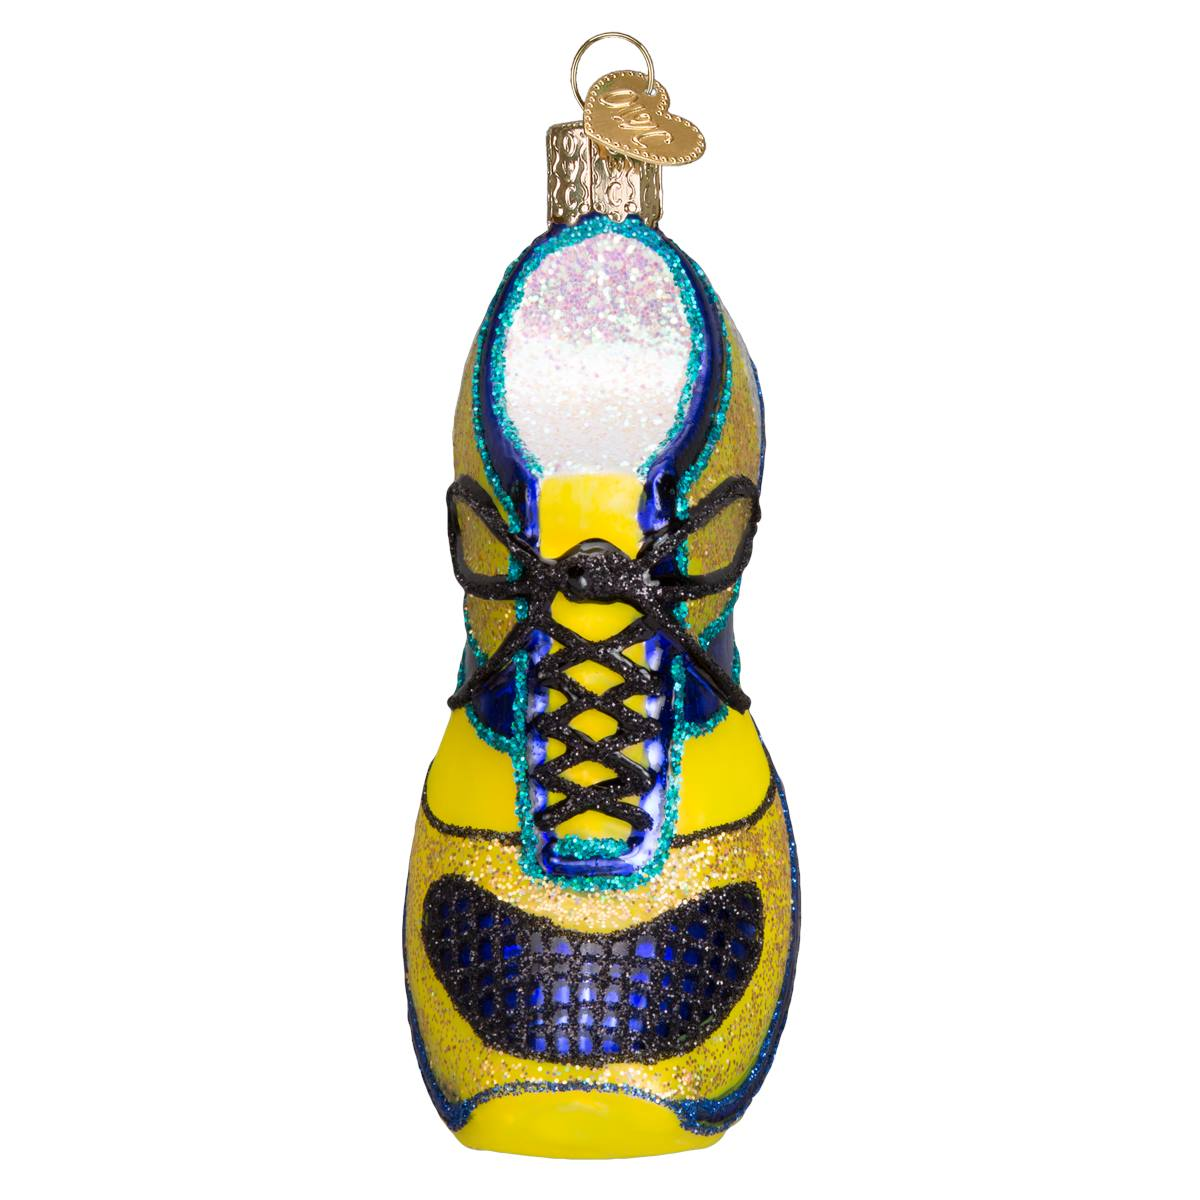 Running Shoe Ornament Traditions